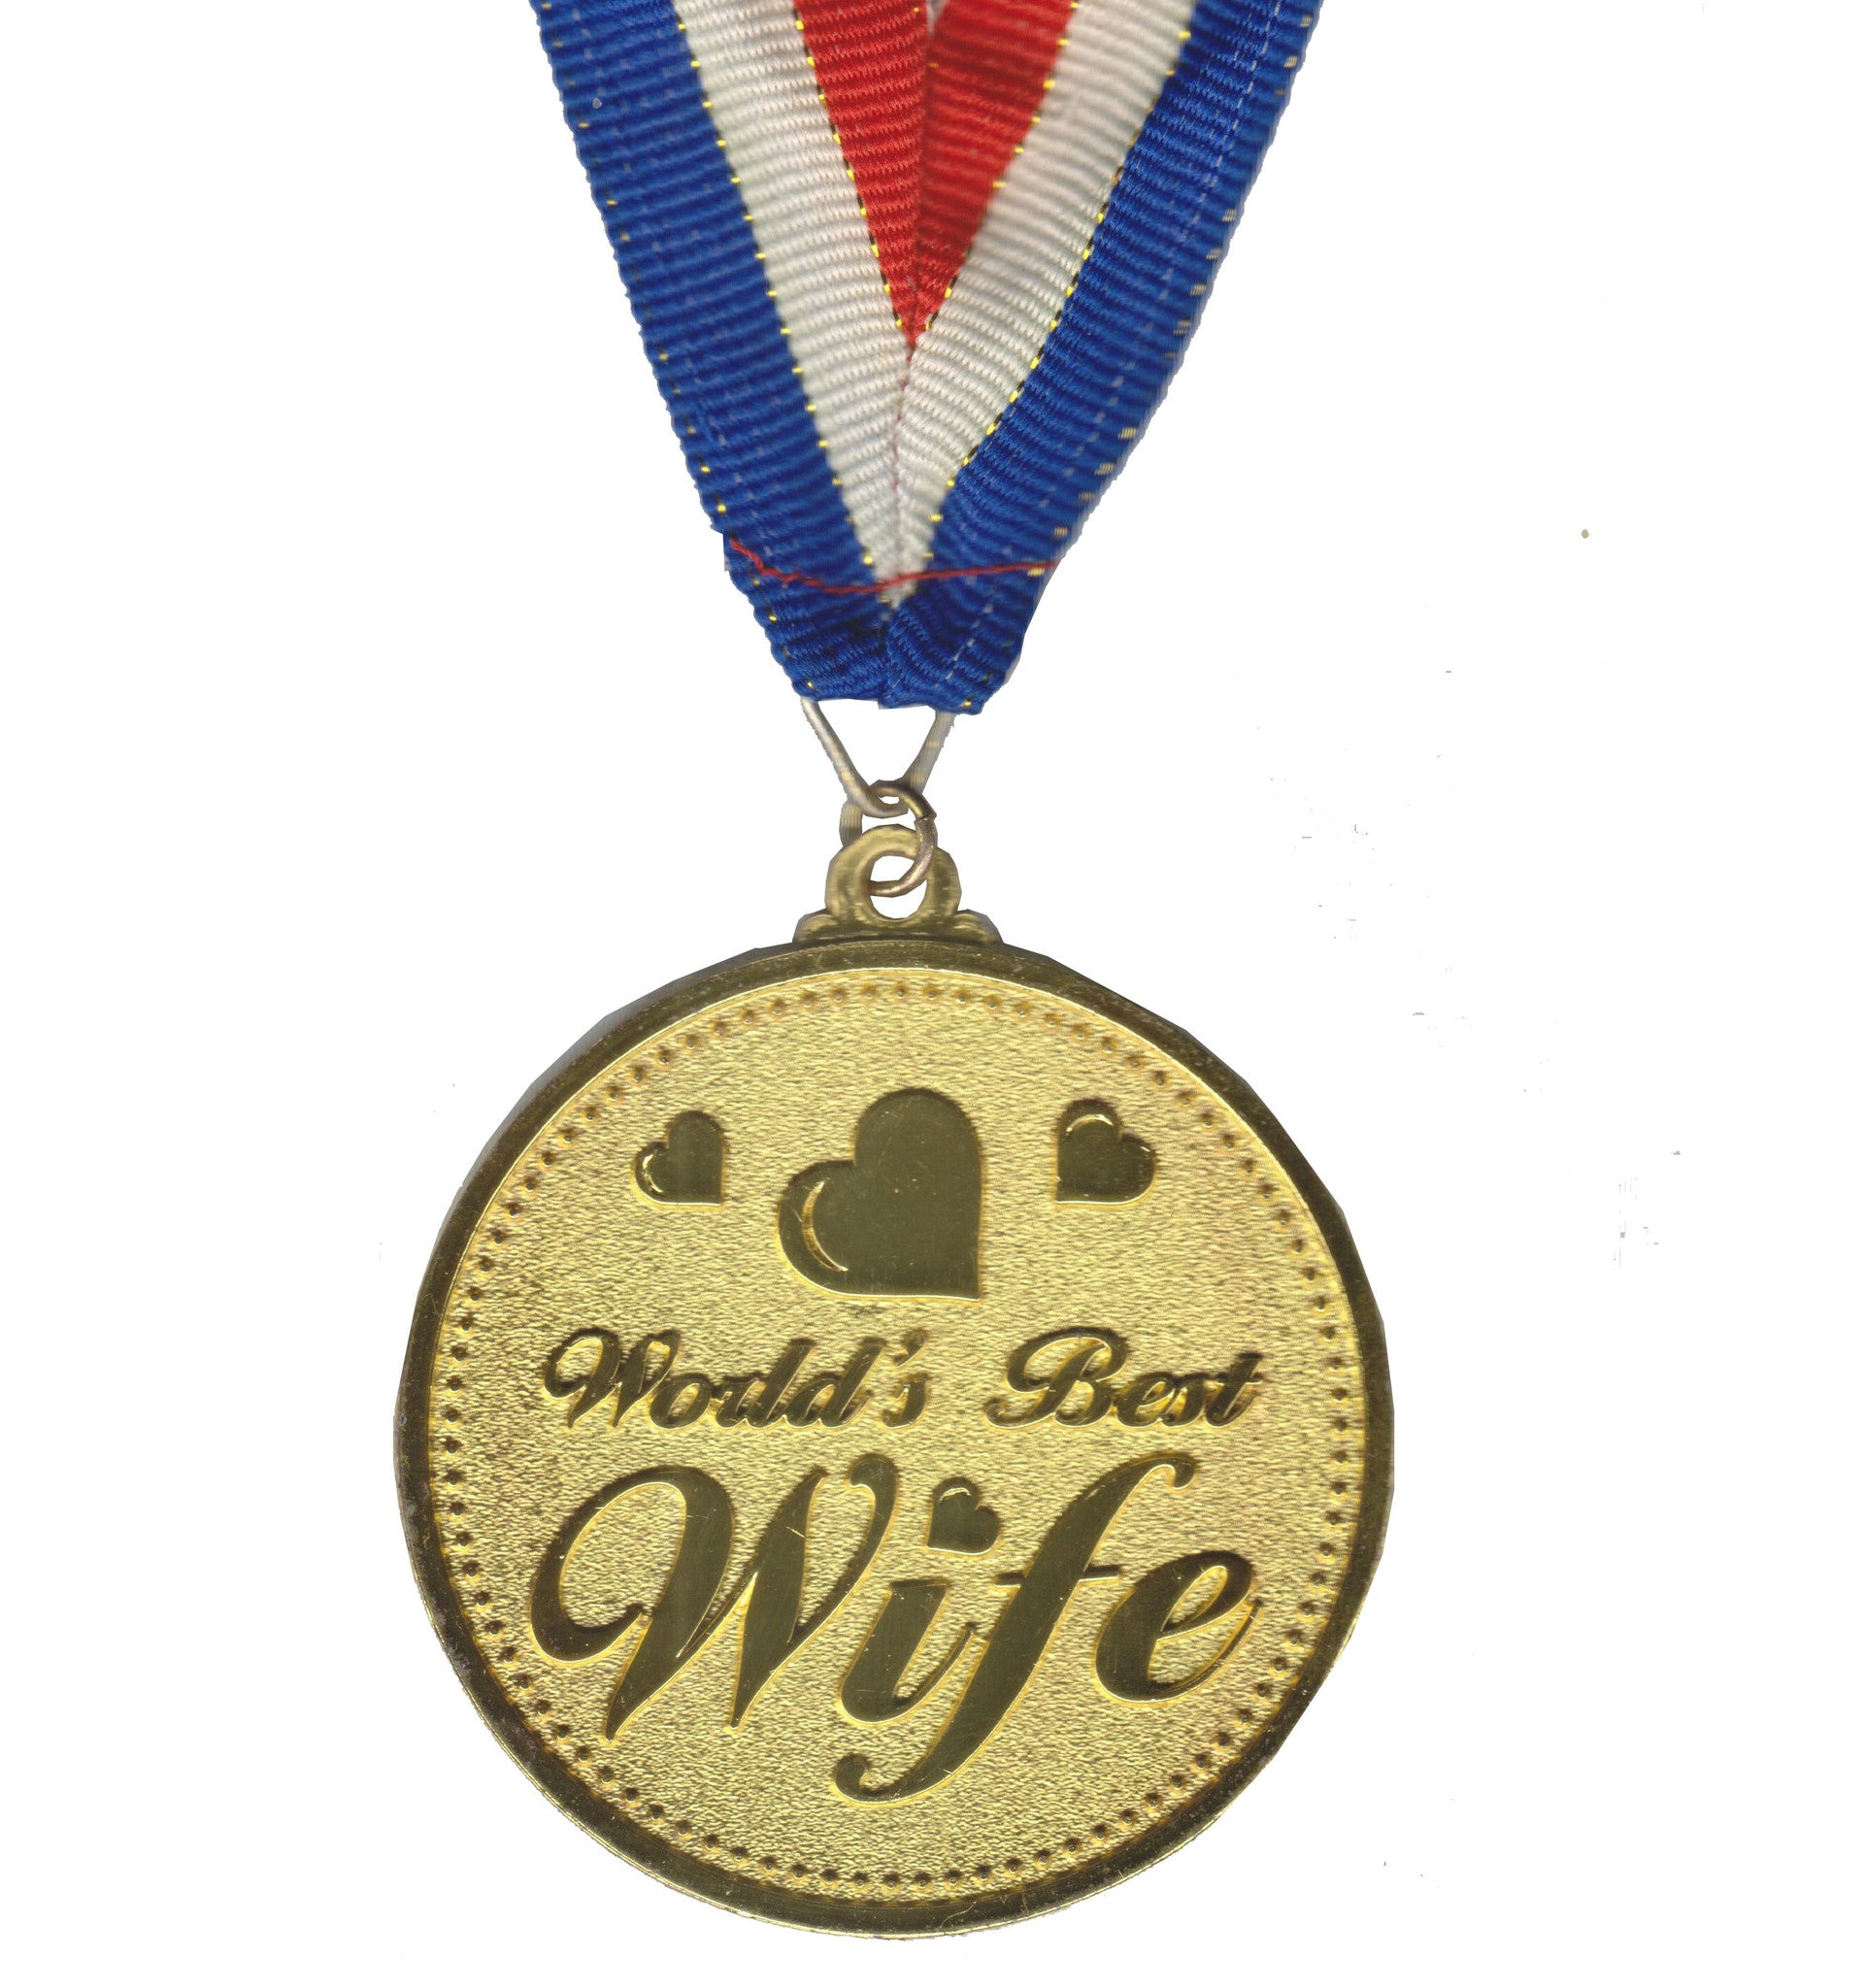 Atpata Funky World's Best WIFE Gold Medal